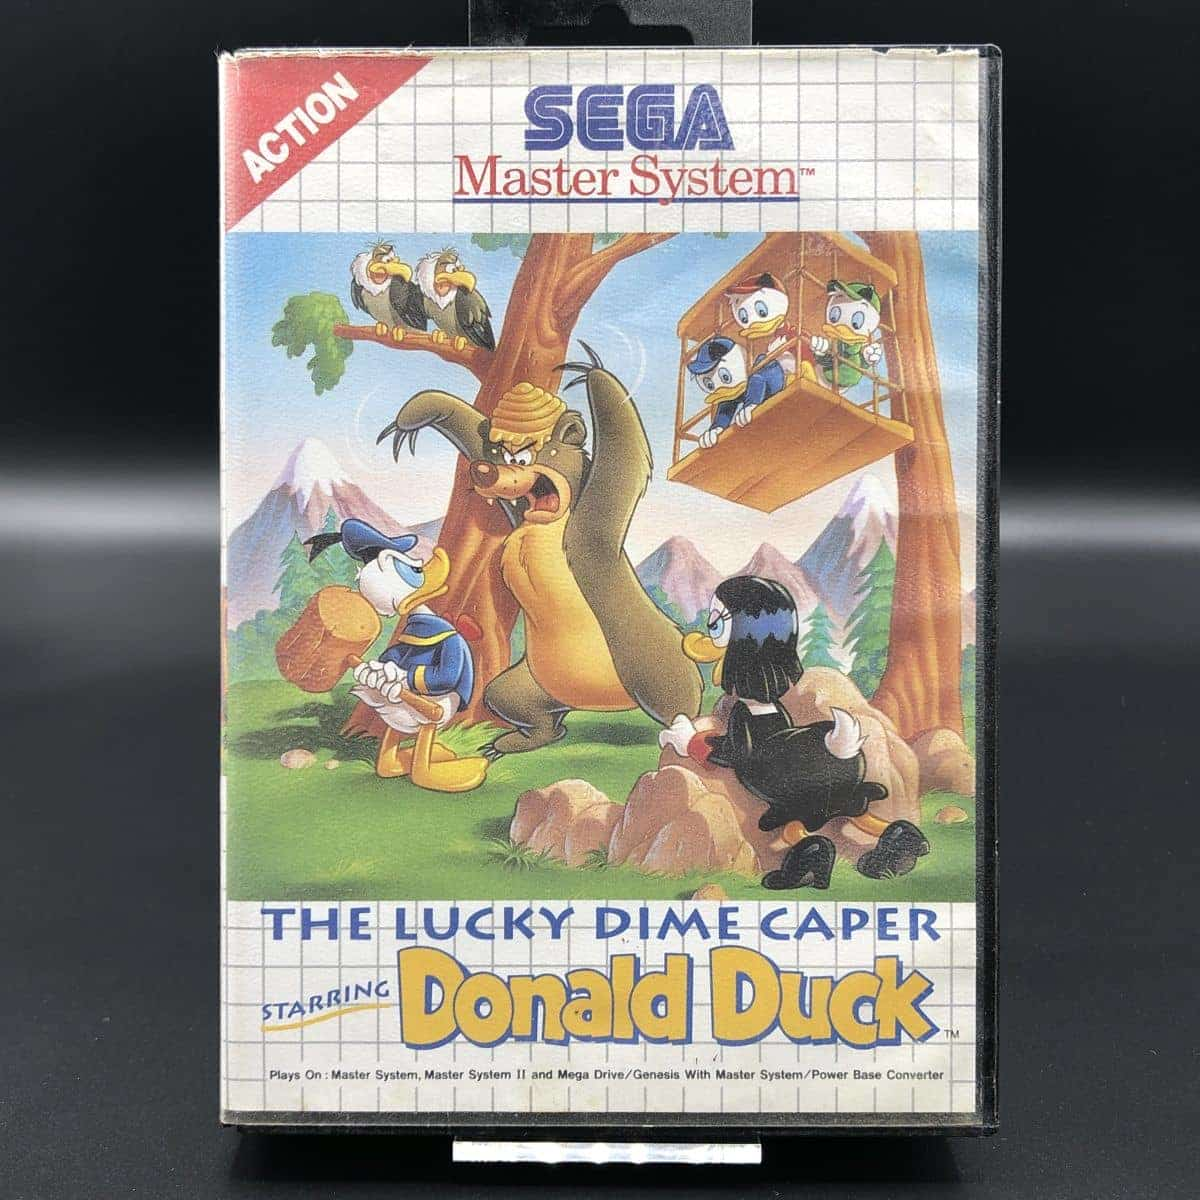 The Lucky Dime Caper starring Donald Duck (ohne Anleitung) (Gut) Sega Master System